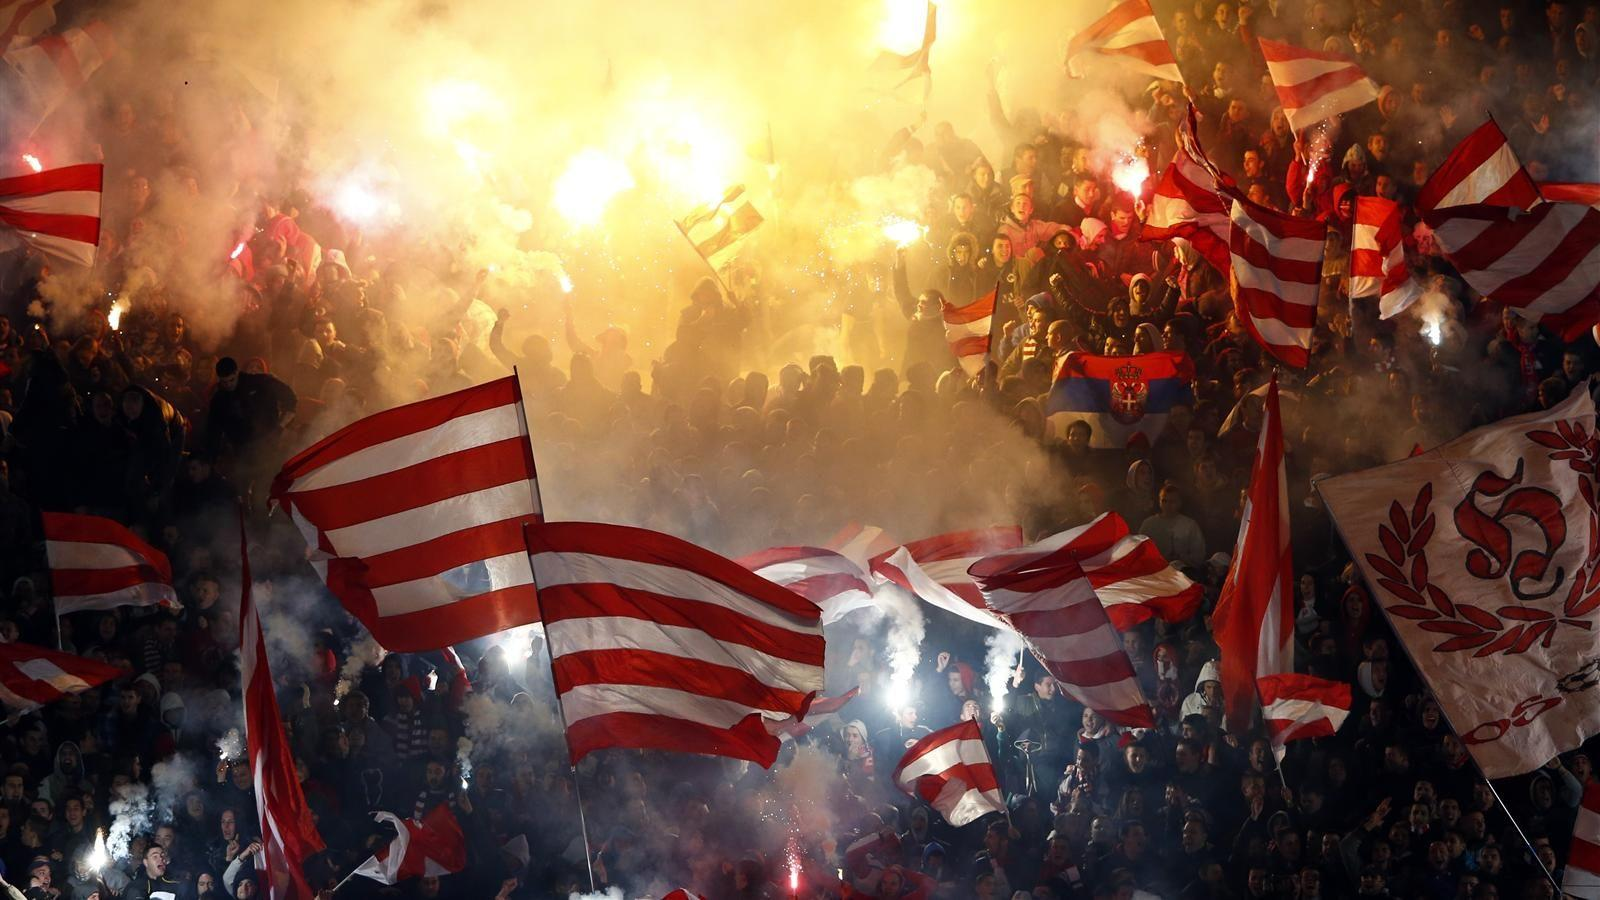 UEFA bans Red Star Belgrade from Champions League - Champions League ...